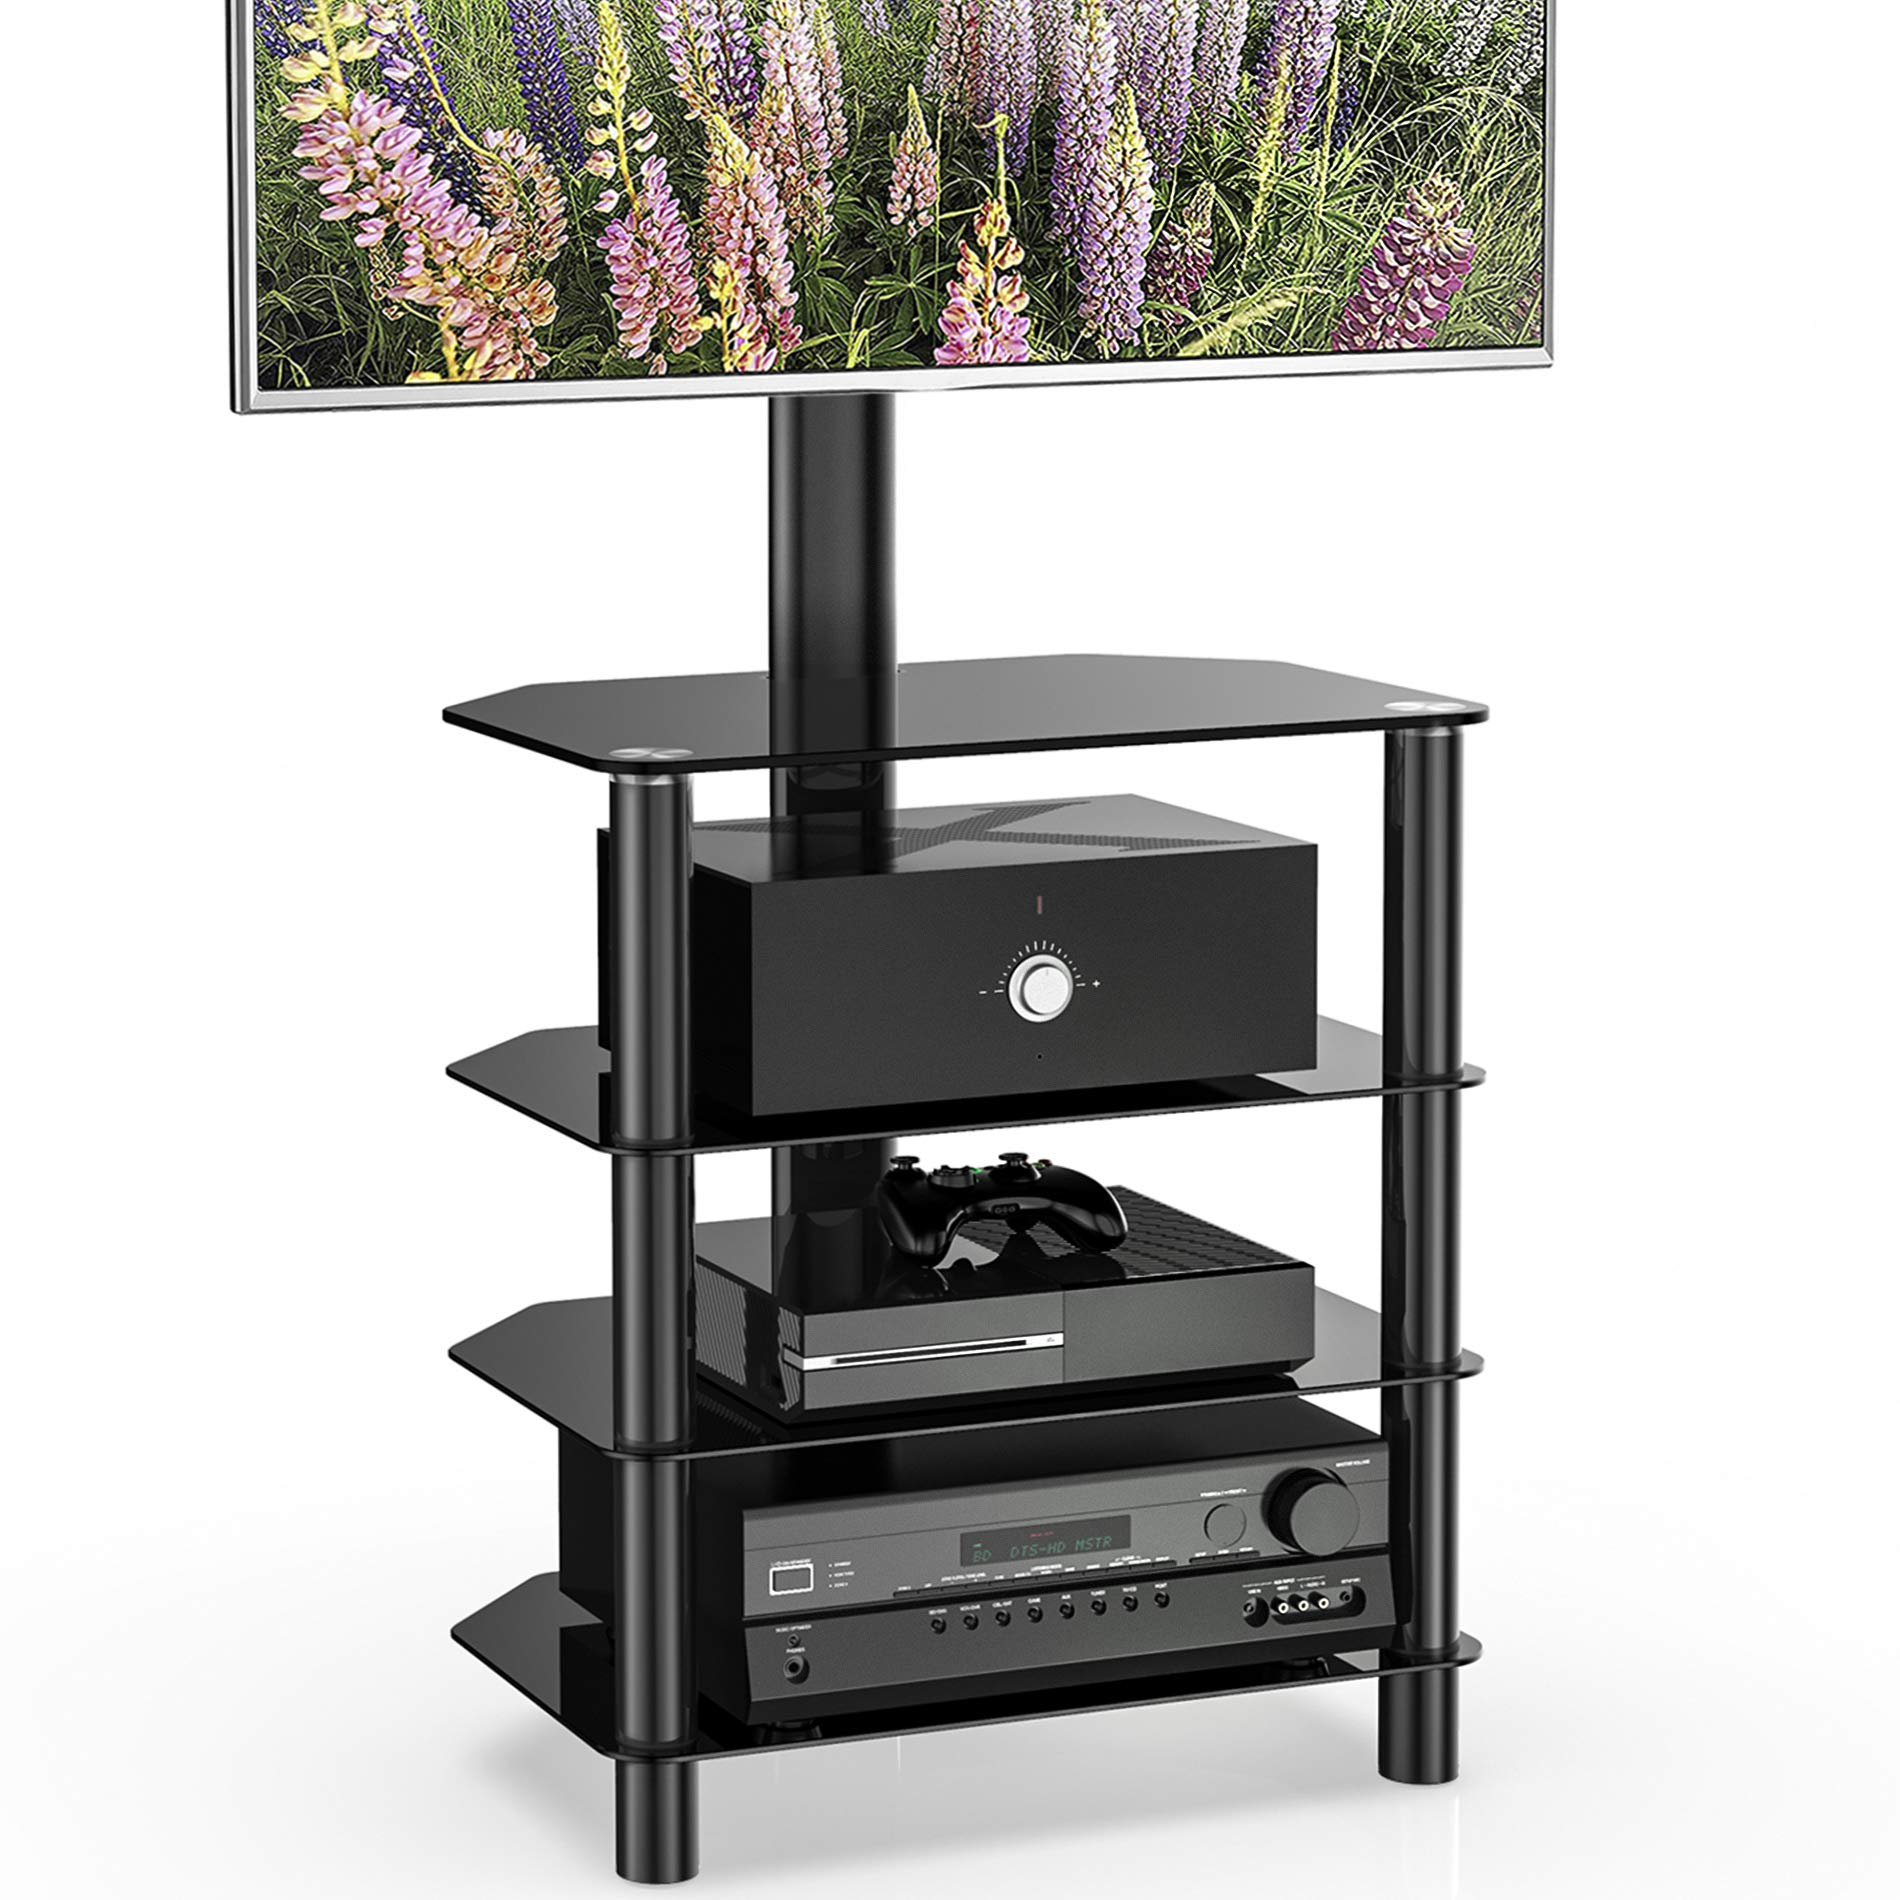 FITUEYES 4-Tiers Corner TV Stand Monitor Stand Base for 32 to 55 inches Height Adjustable Media Storage Stand Tempered Glass Shelves for Media Player TW406001MB by FITUEYES